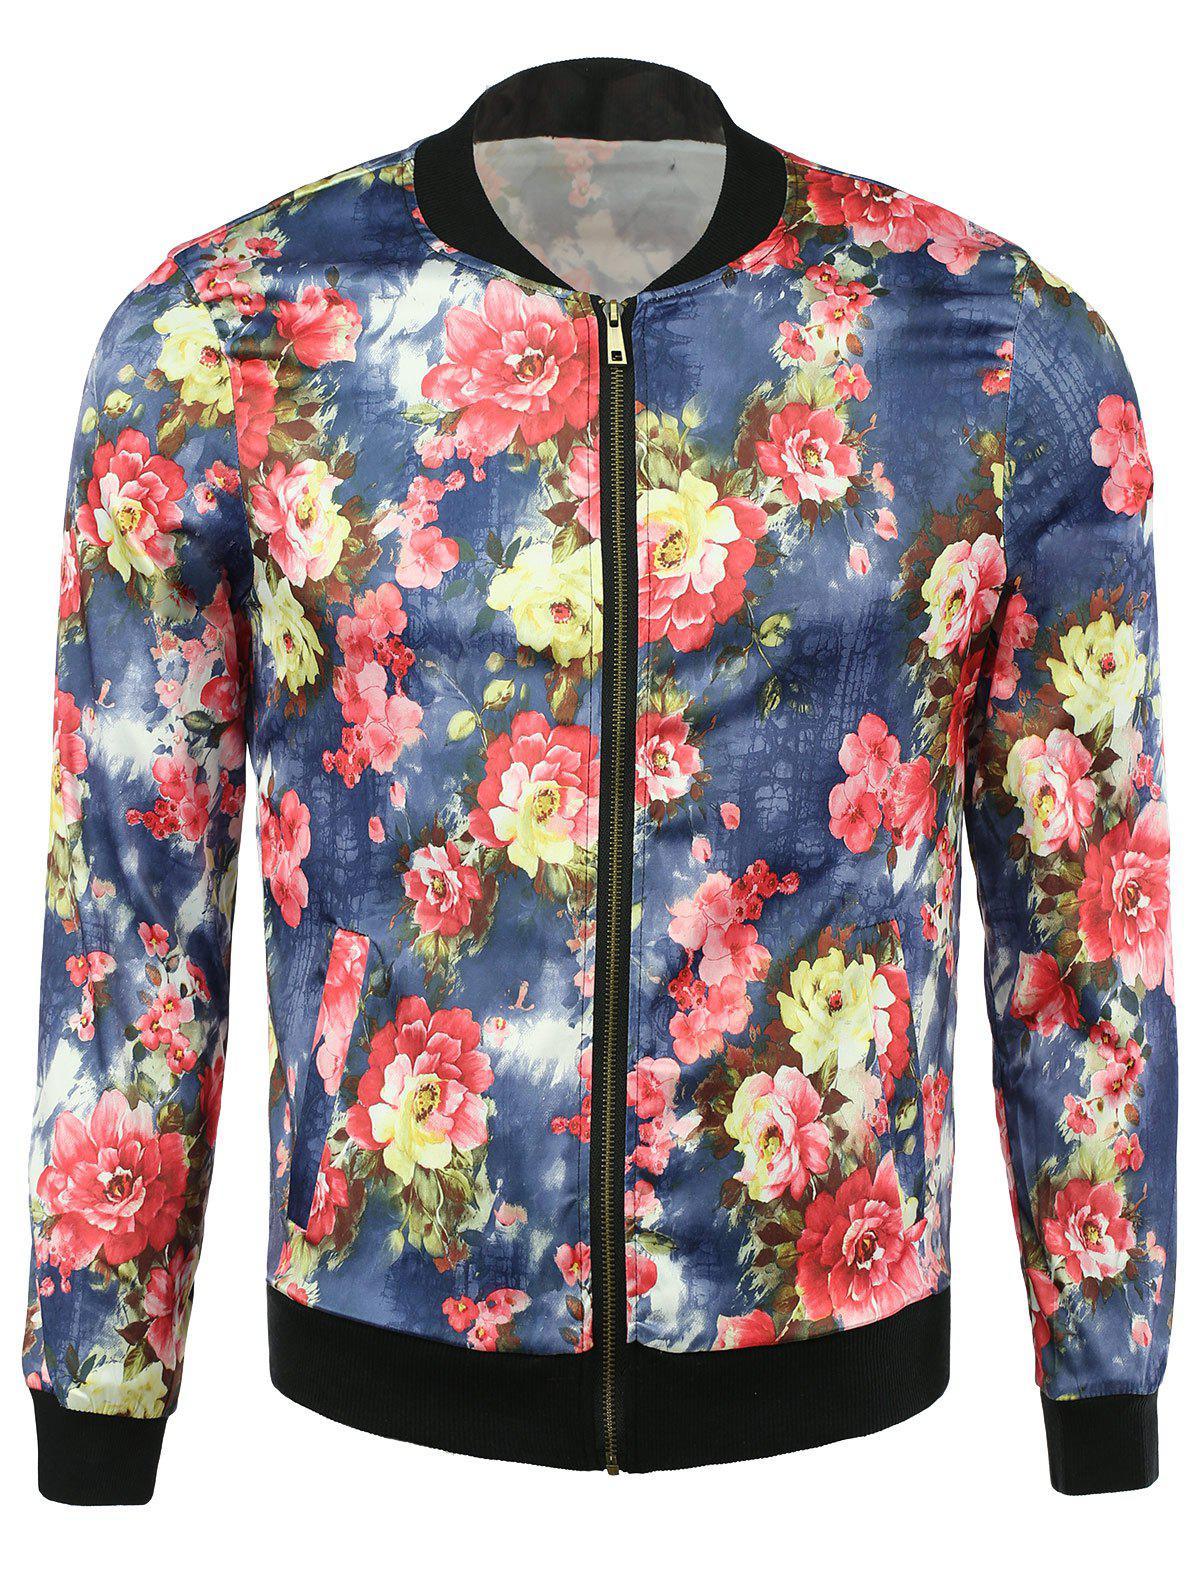 Casual Floral Print Zip Up Jacket leopard floral print zip up jacket